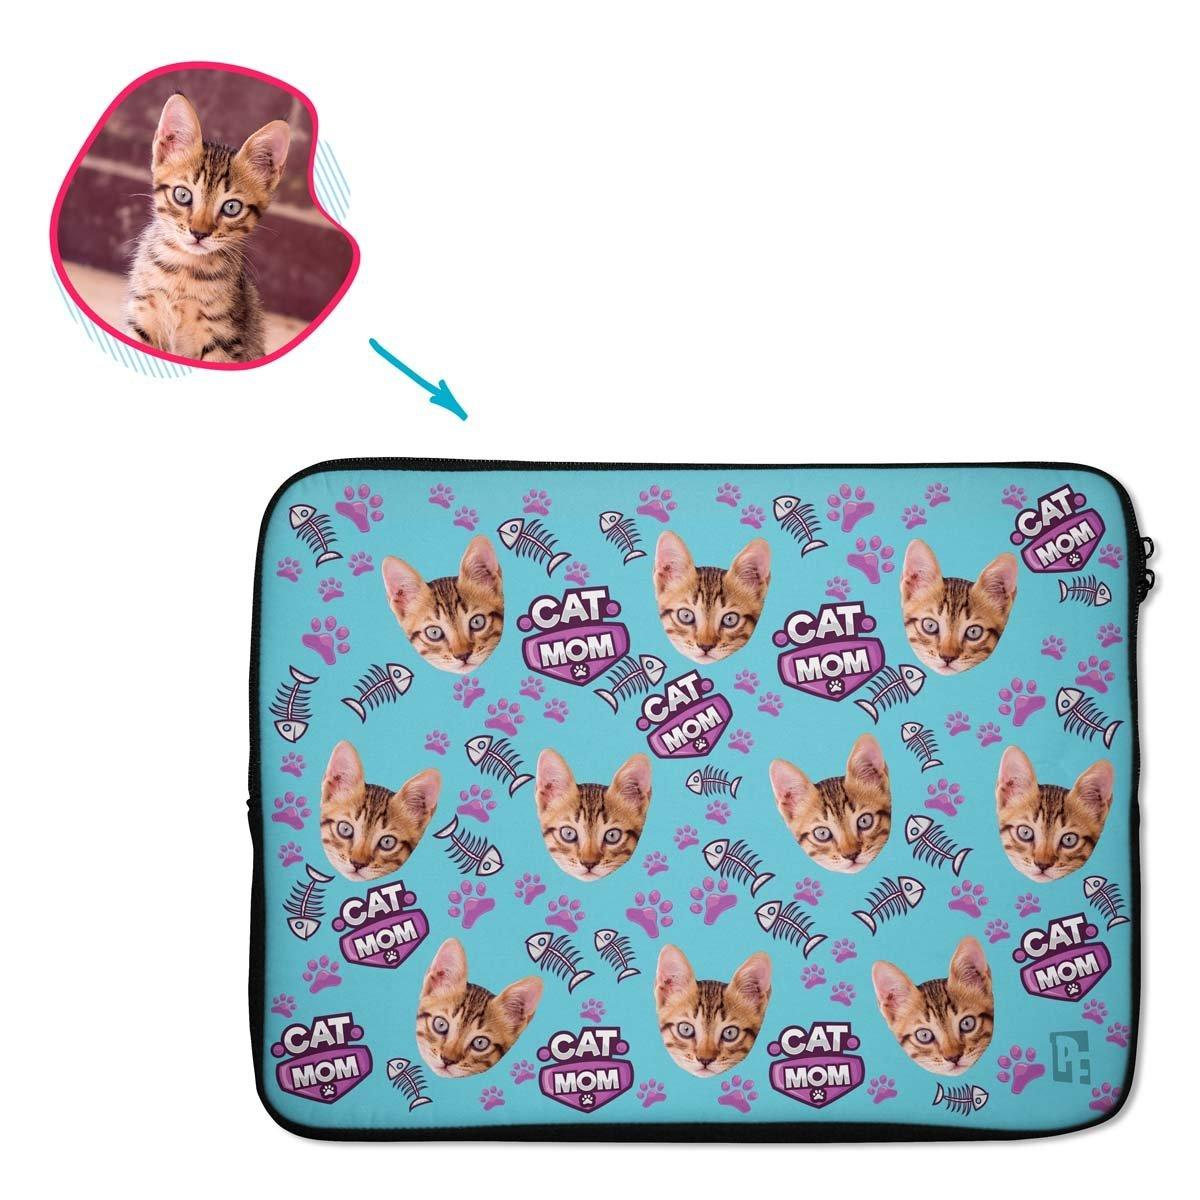 blue Cat Mom laptop sleeve personalized with photo of face printed on them